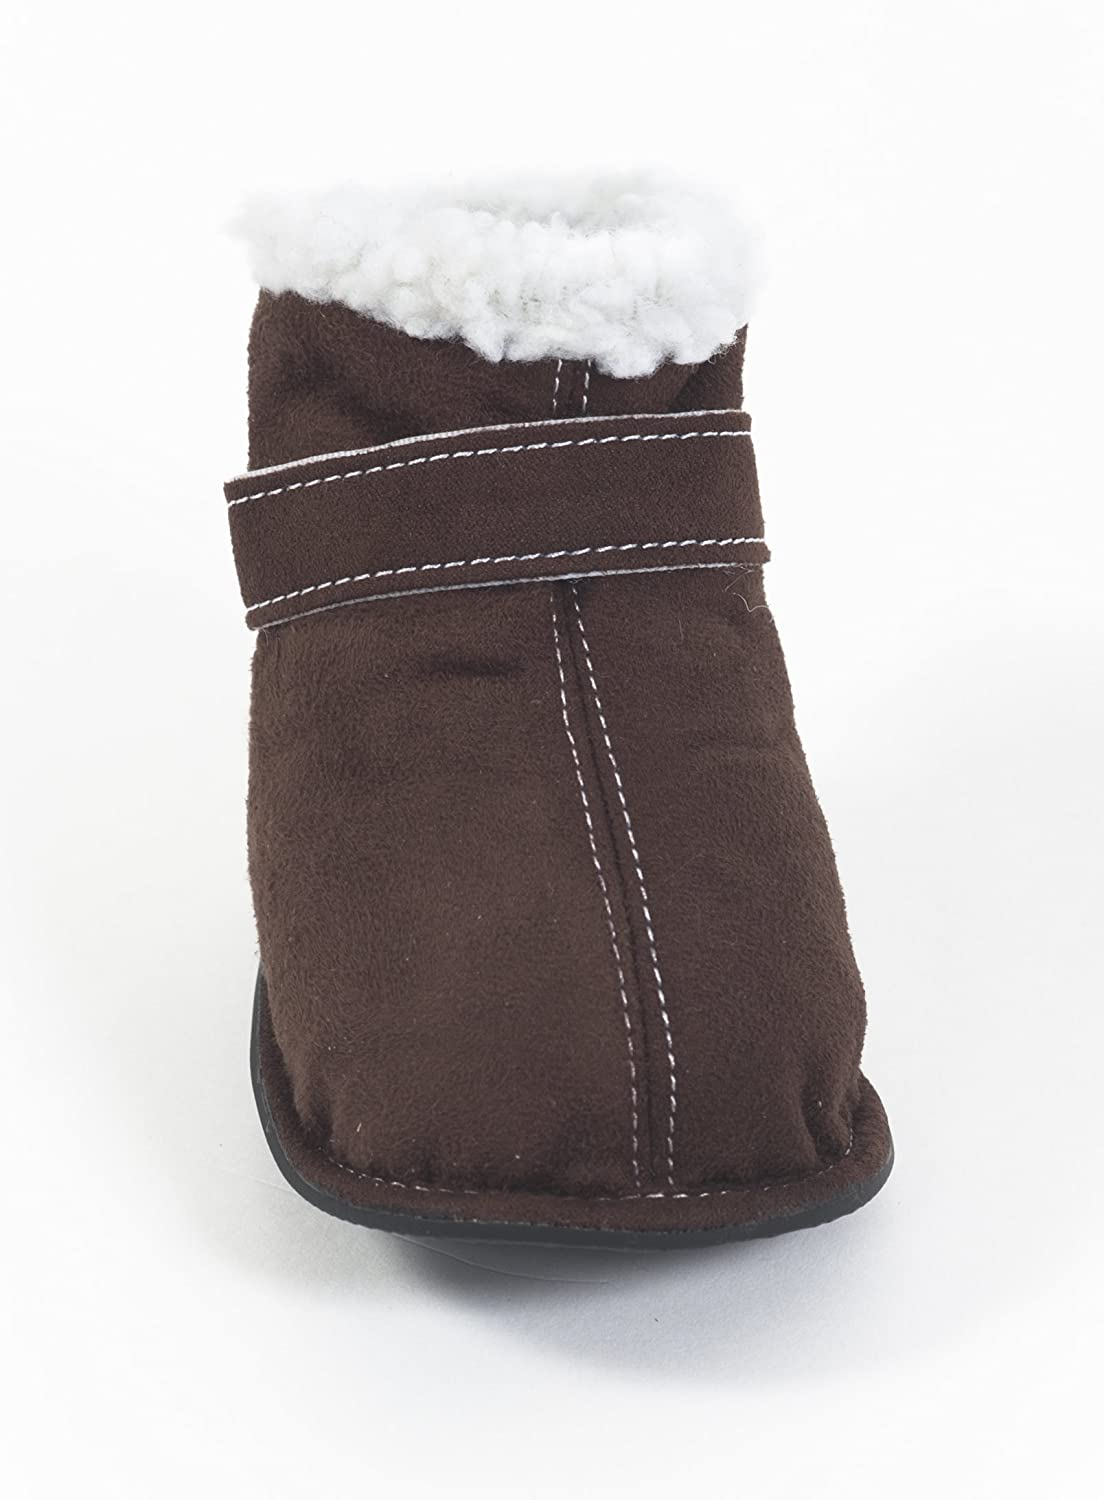 Fashion Pet Outdoor Dog Shearling Boots, Large, Brown